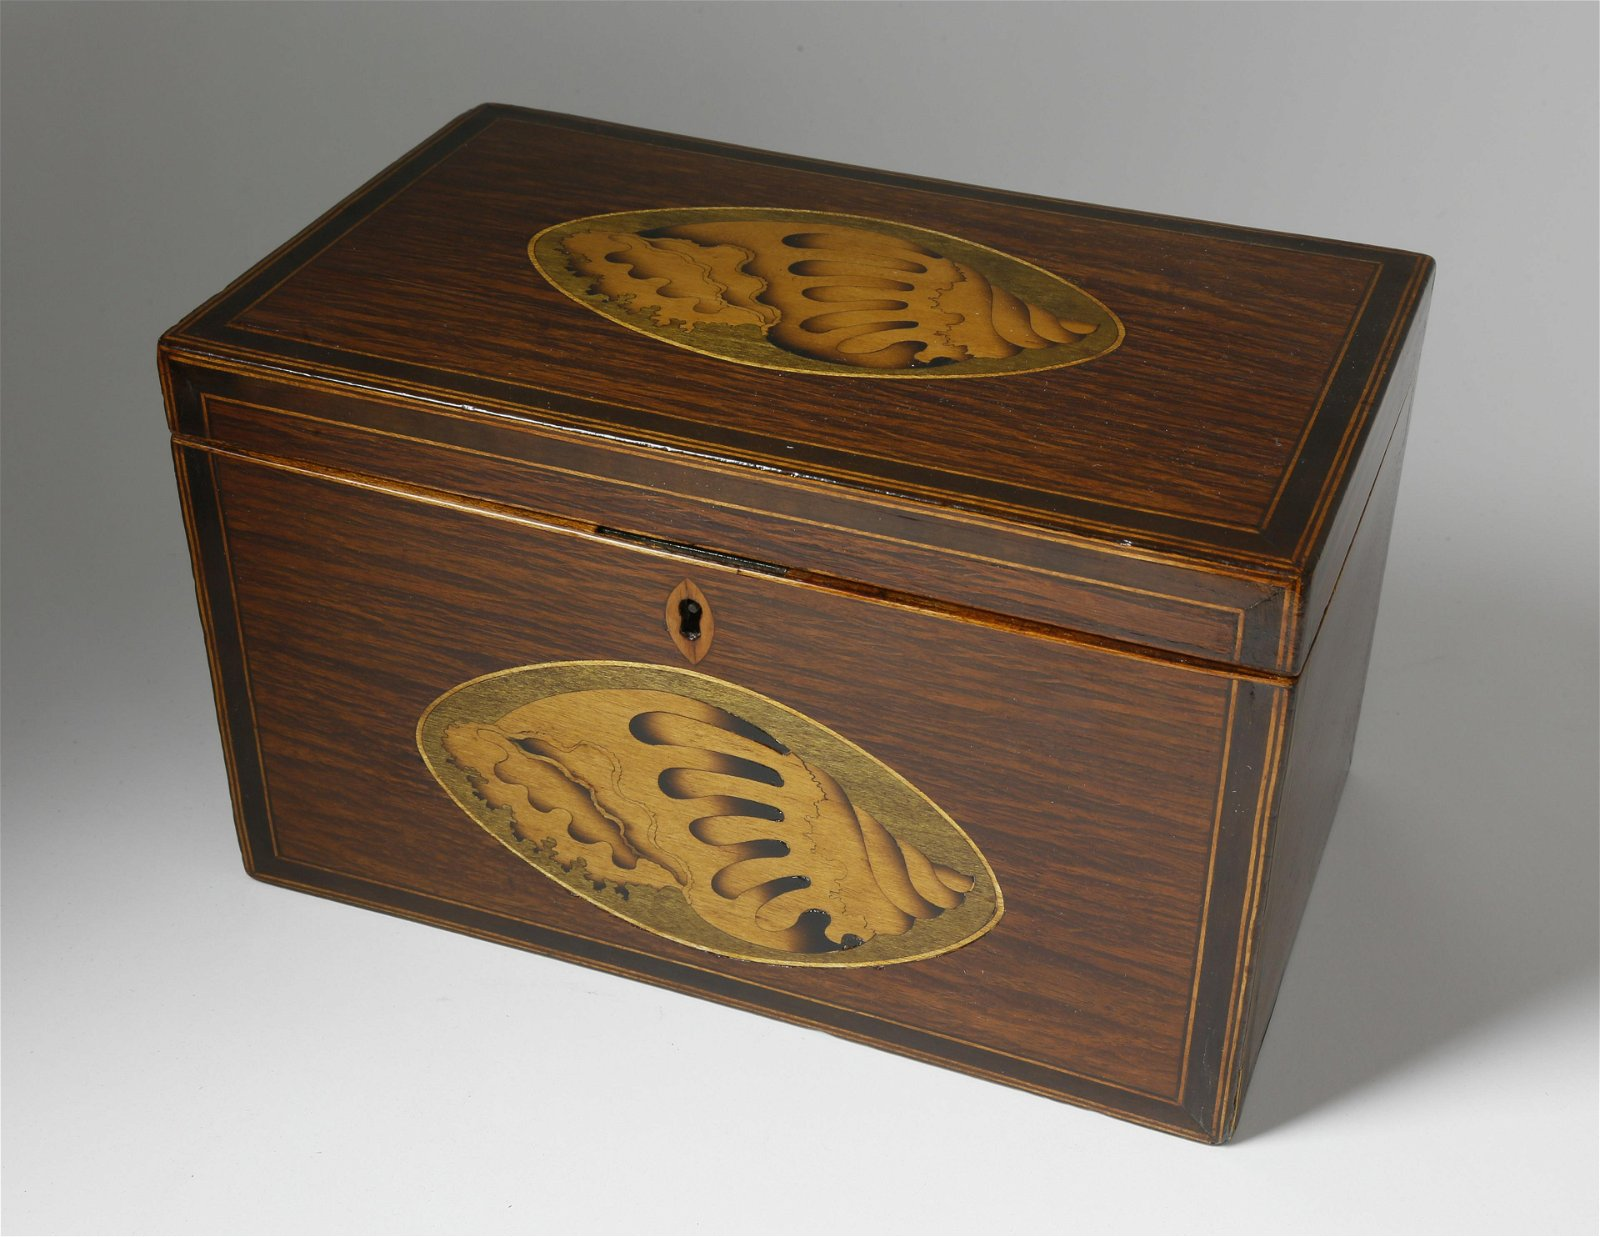 Partridge Wood Satinwood Shell Tea Caddy, 19th Cent.